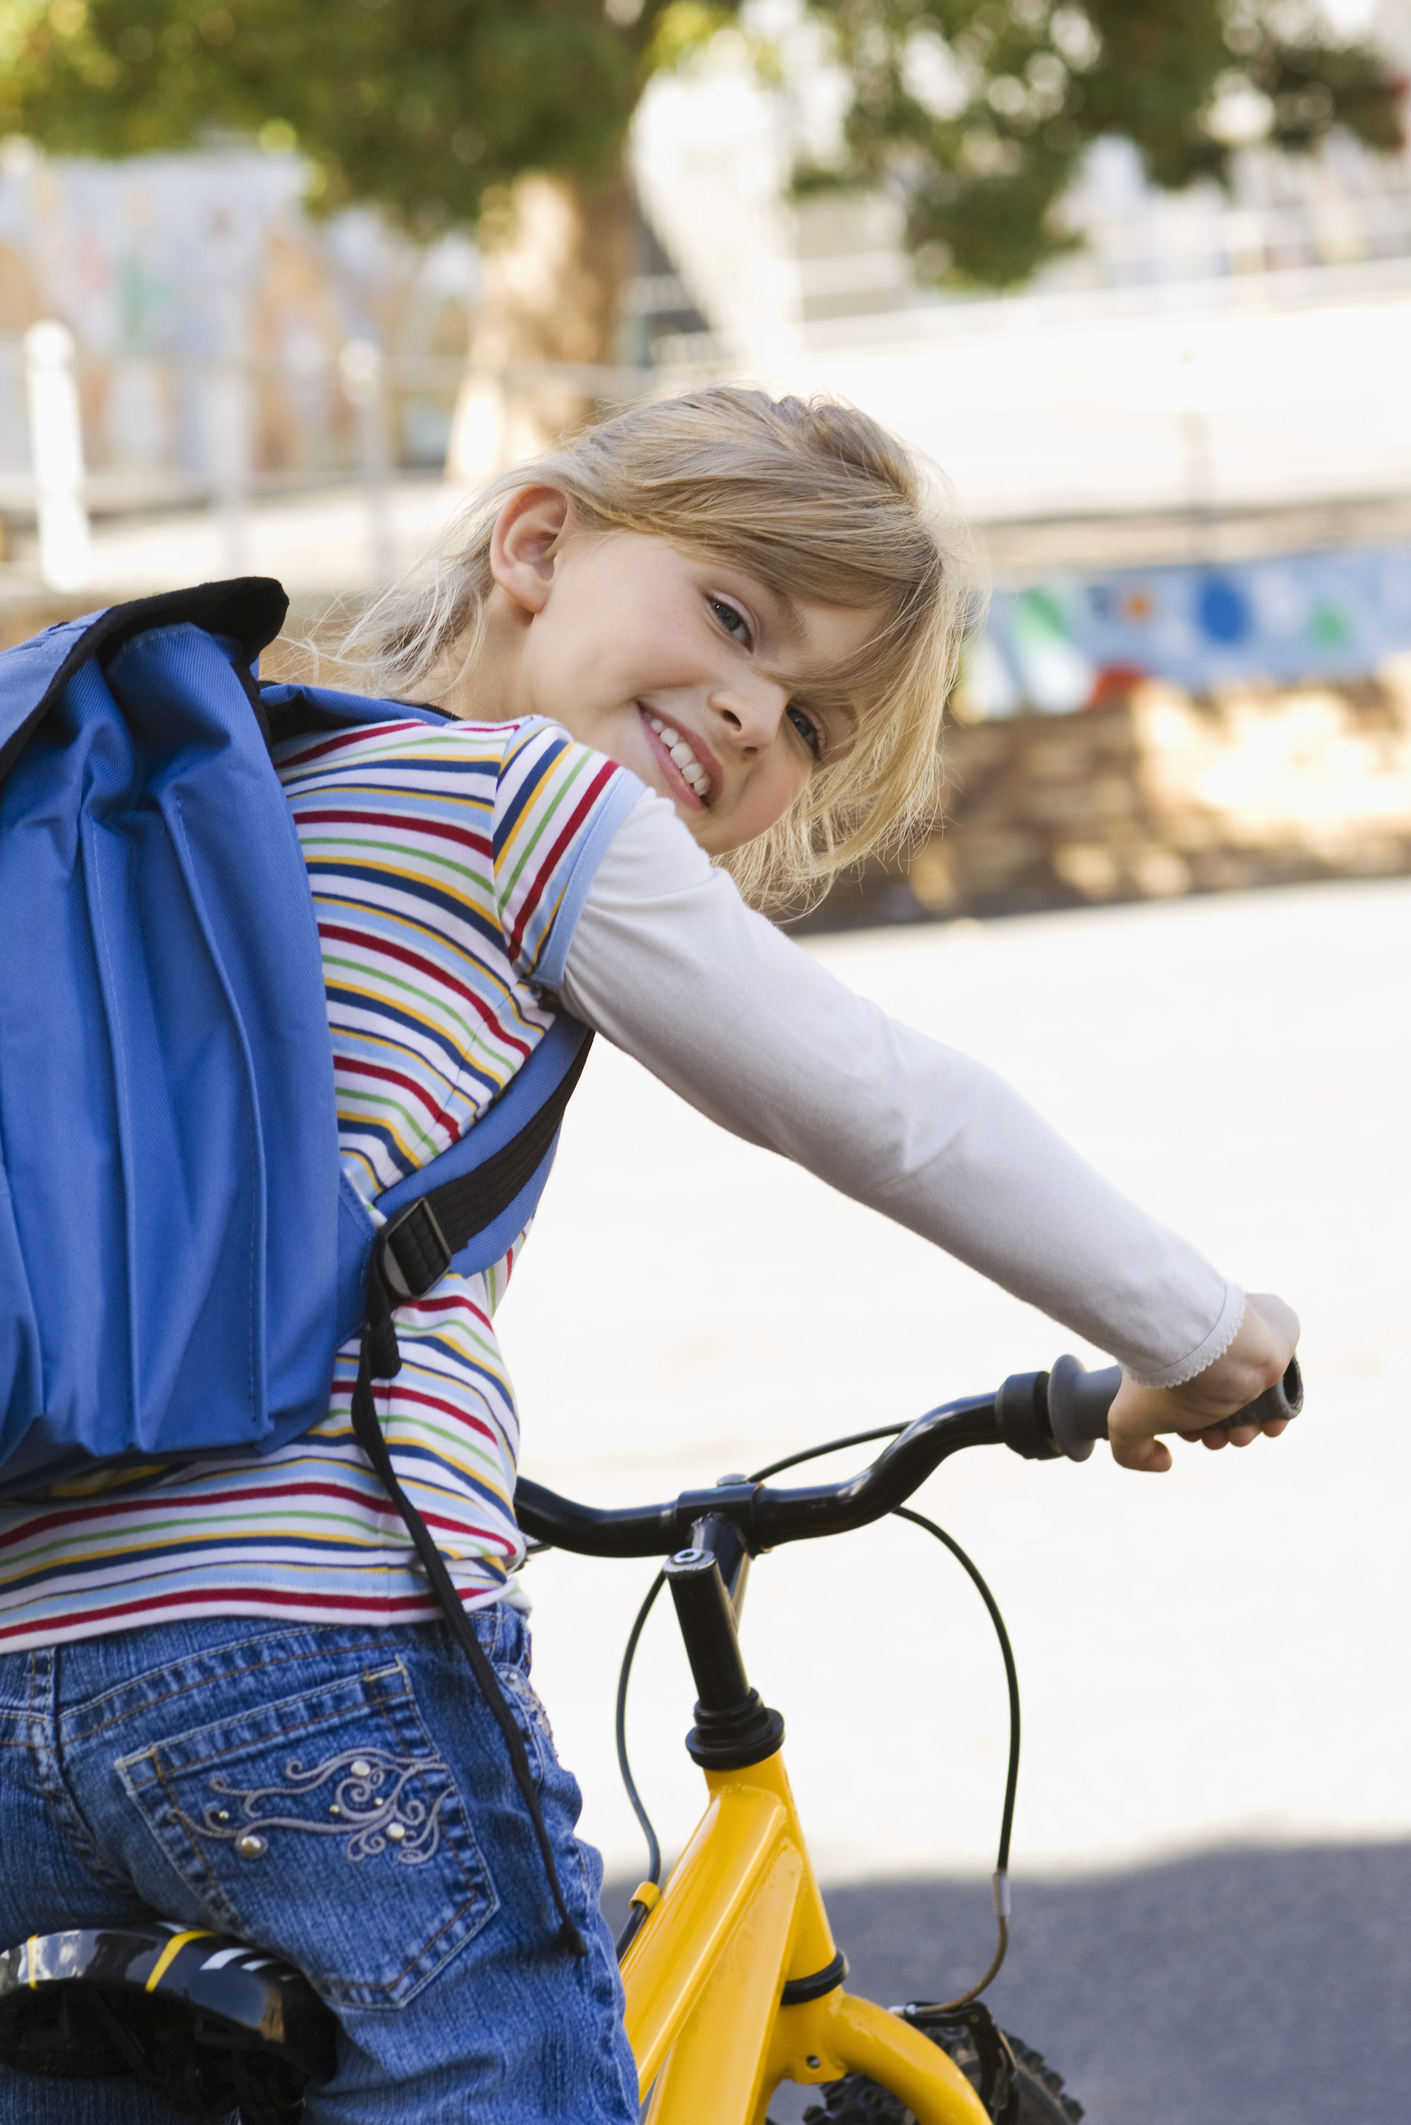 Girl riding bicycle with backpack